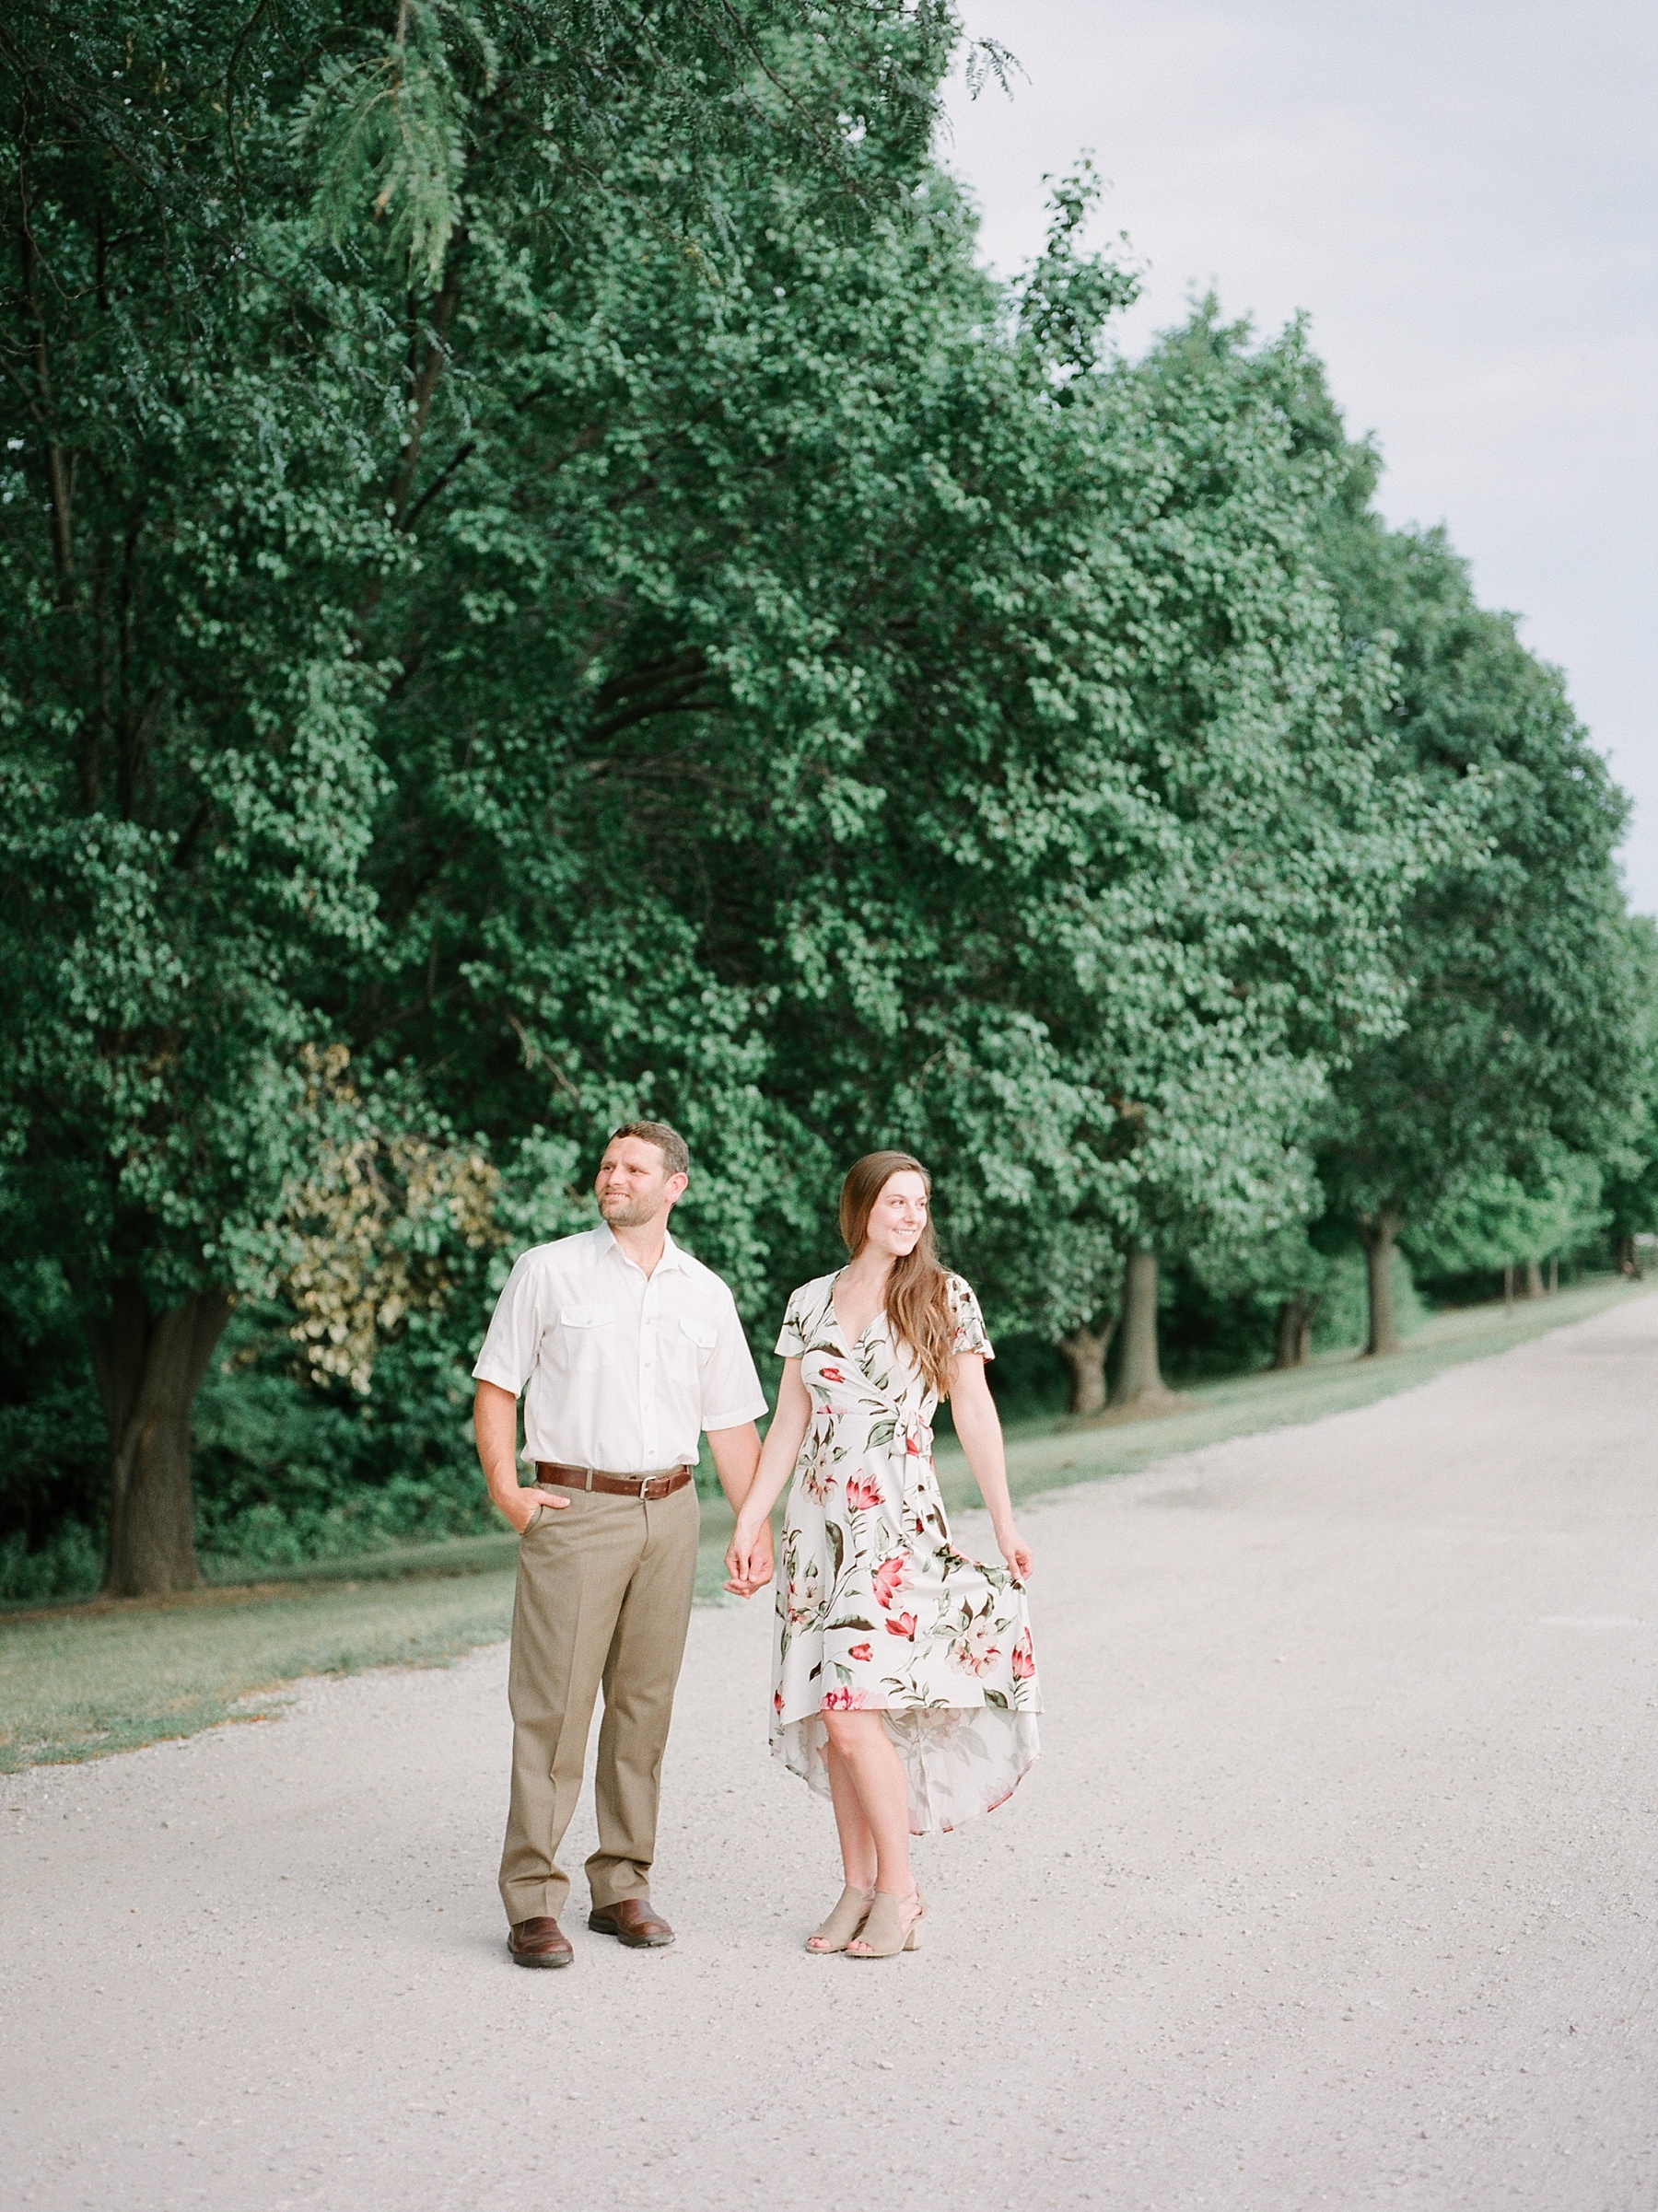 Sunset Engagement Session at Faust Park Chesterfield Missouri by Kelsi Kliethermes Photography_0019.jpg